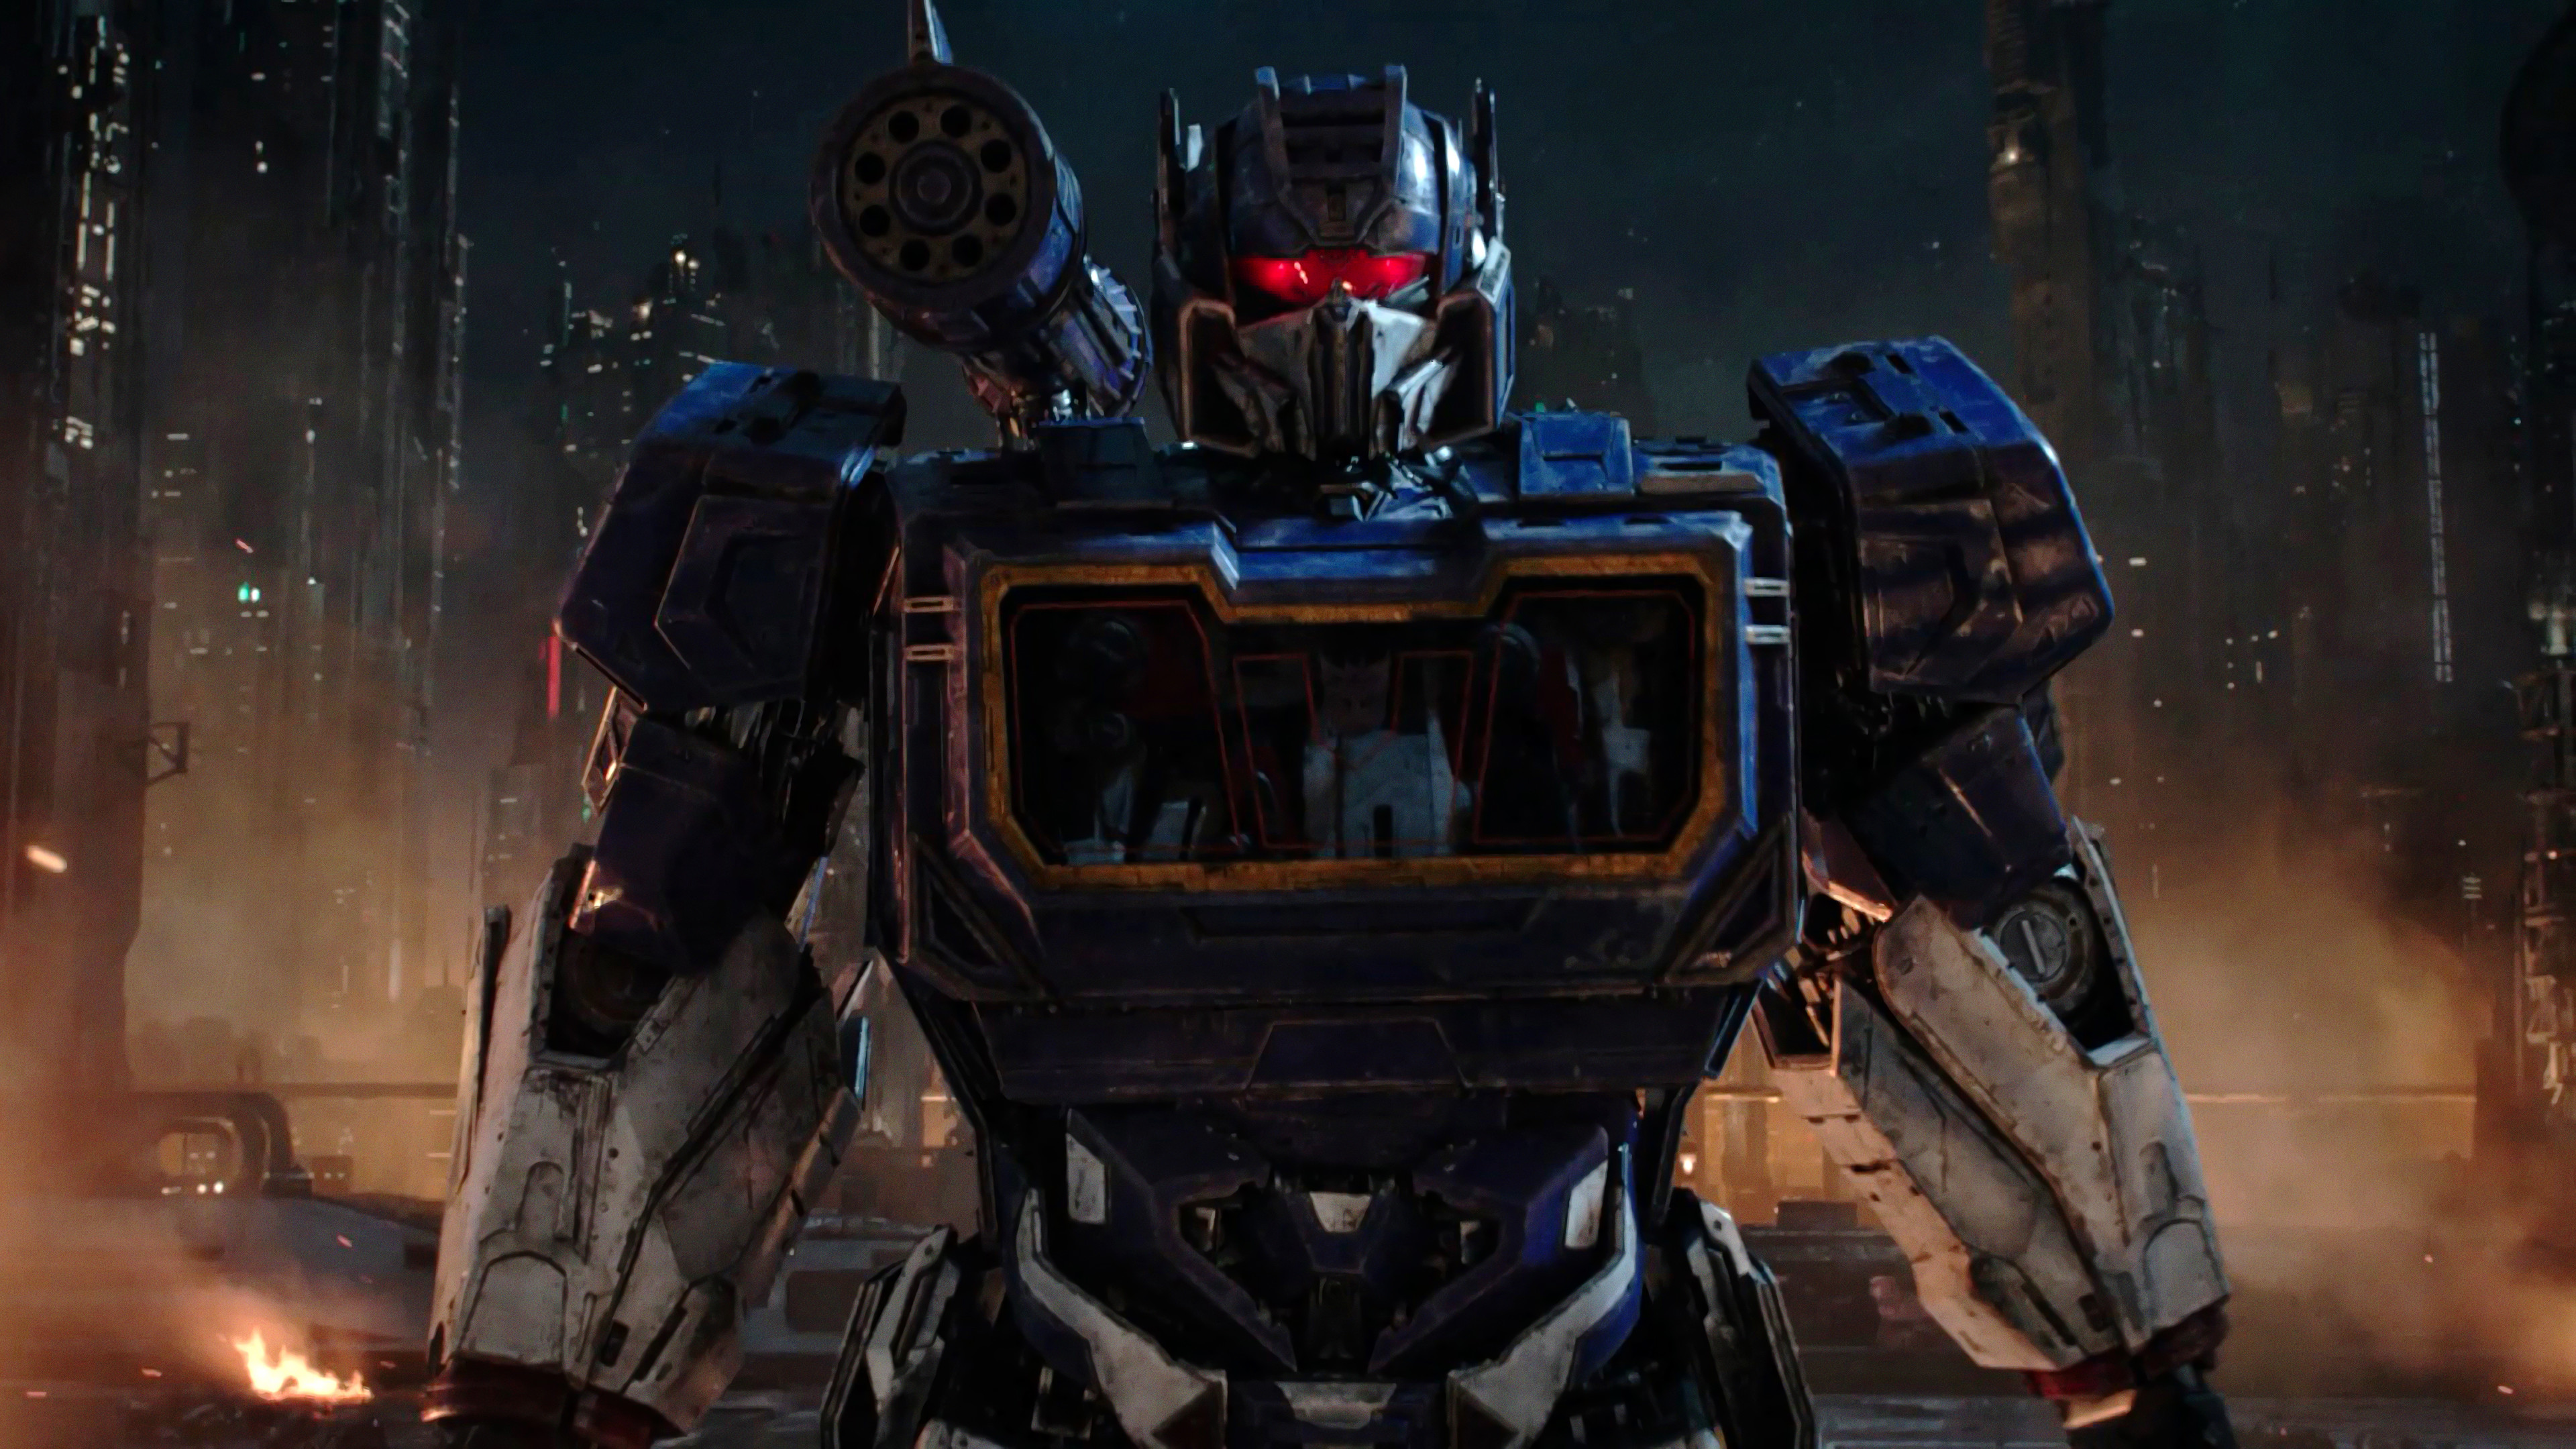 transformers hd wallpapers for android